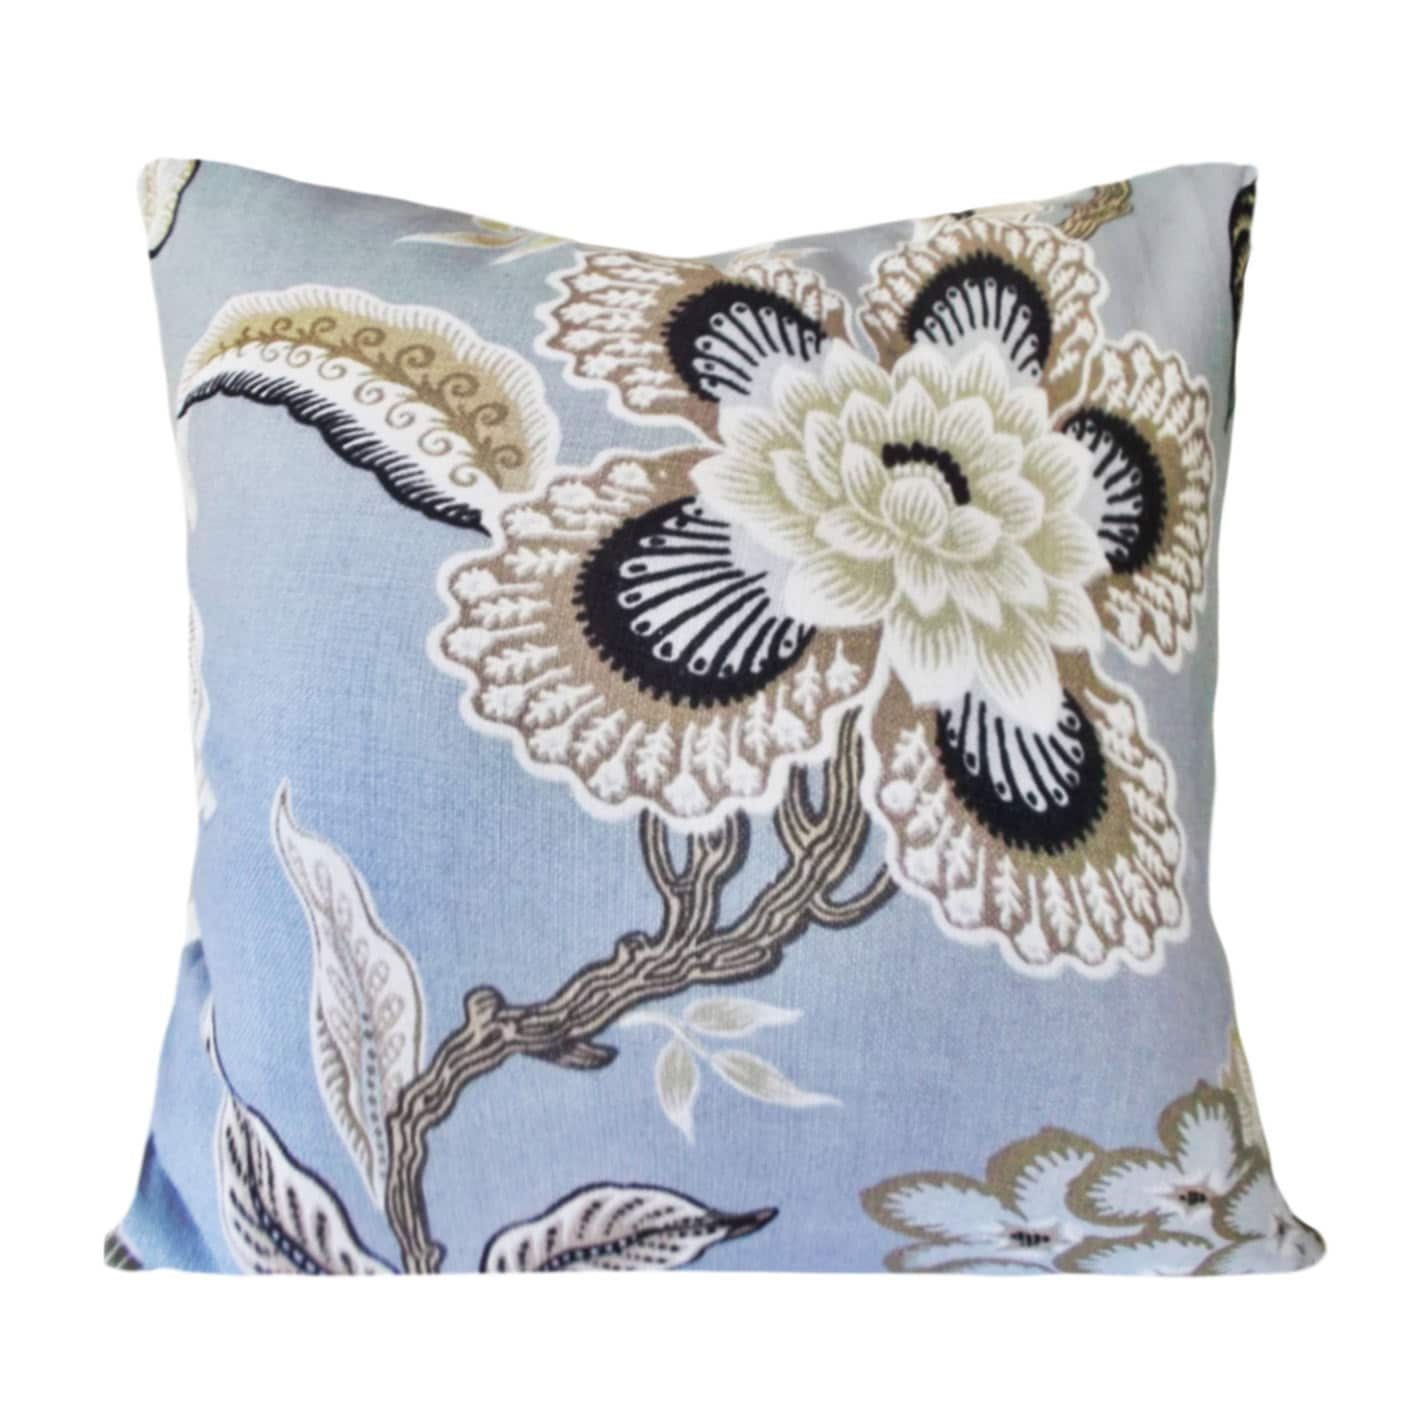 Schumacher Hothouse Flowers Mineral Decorative Pillow Cover Etsy